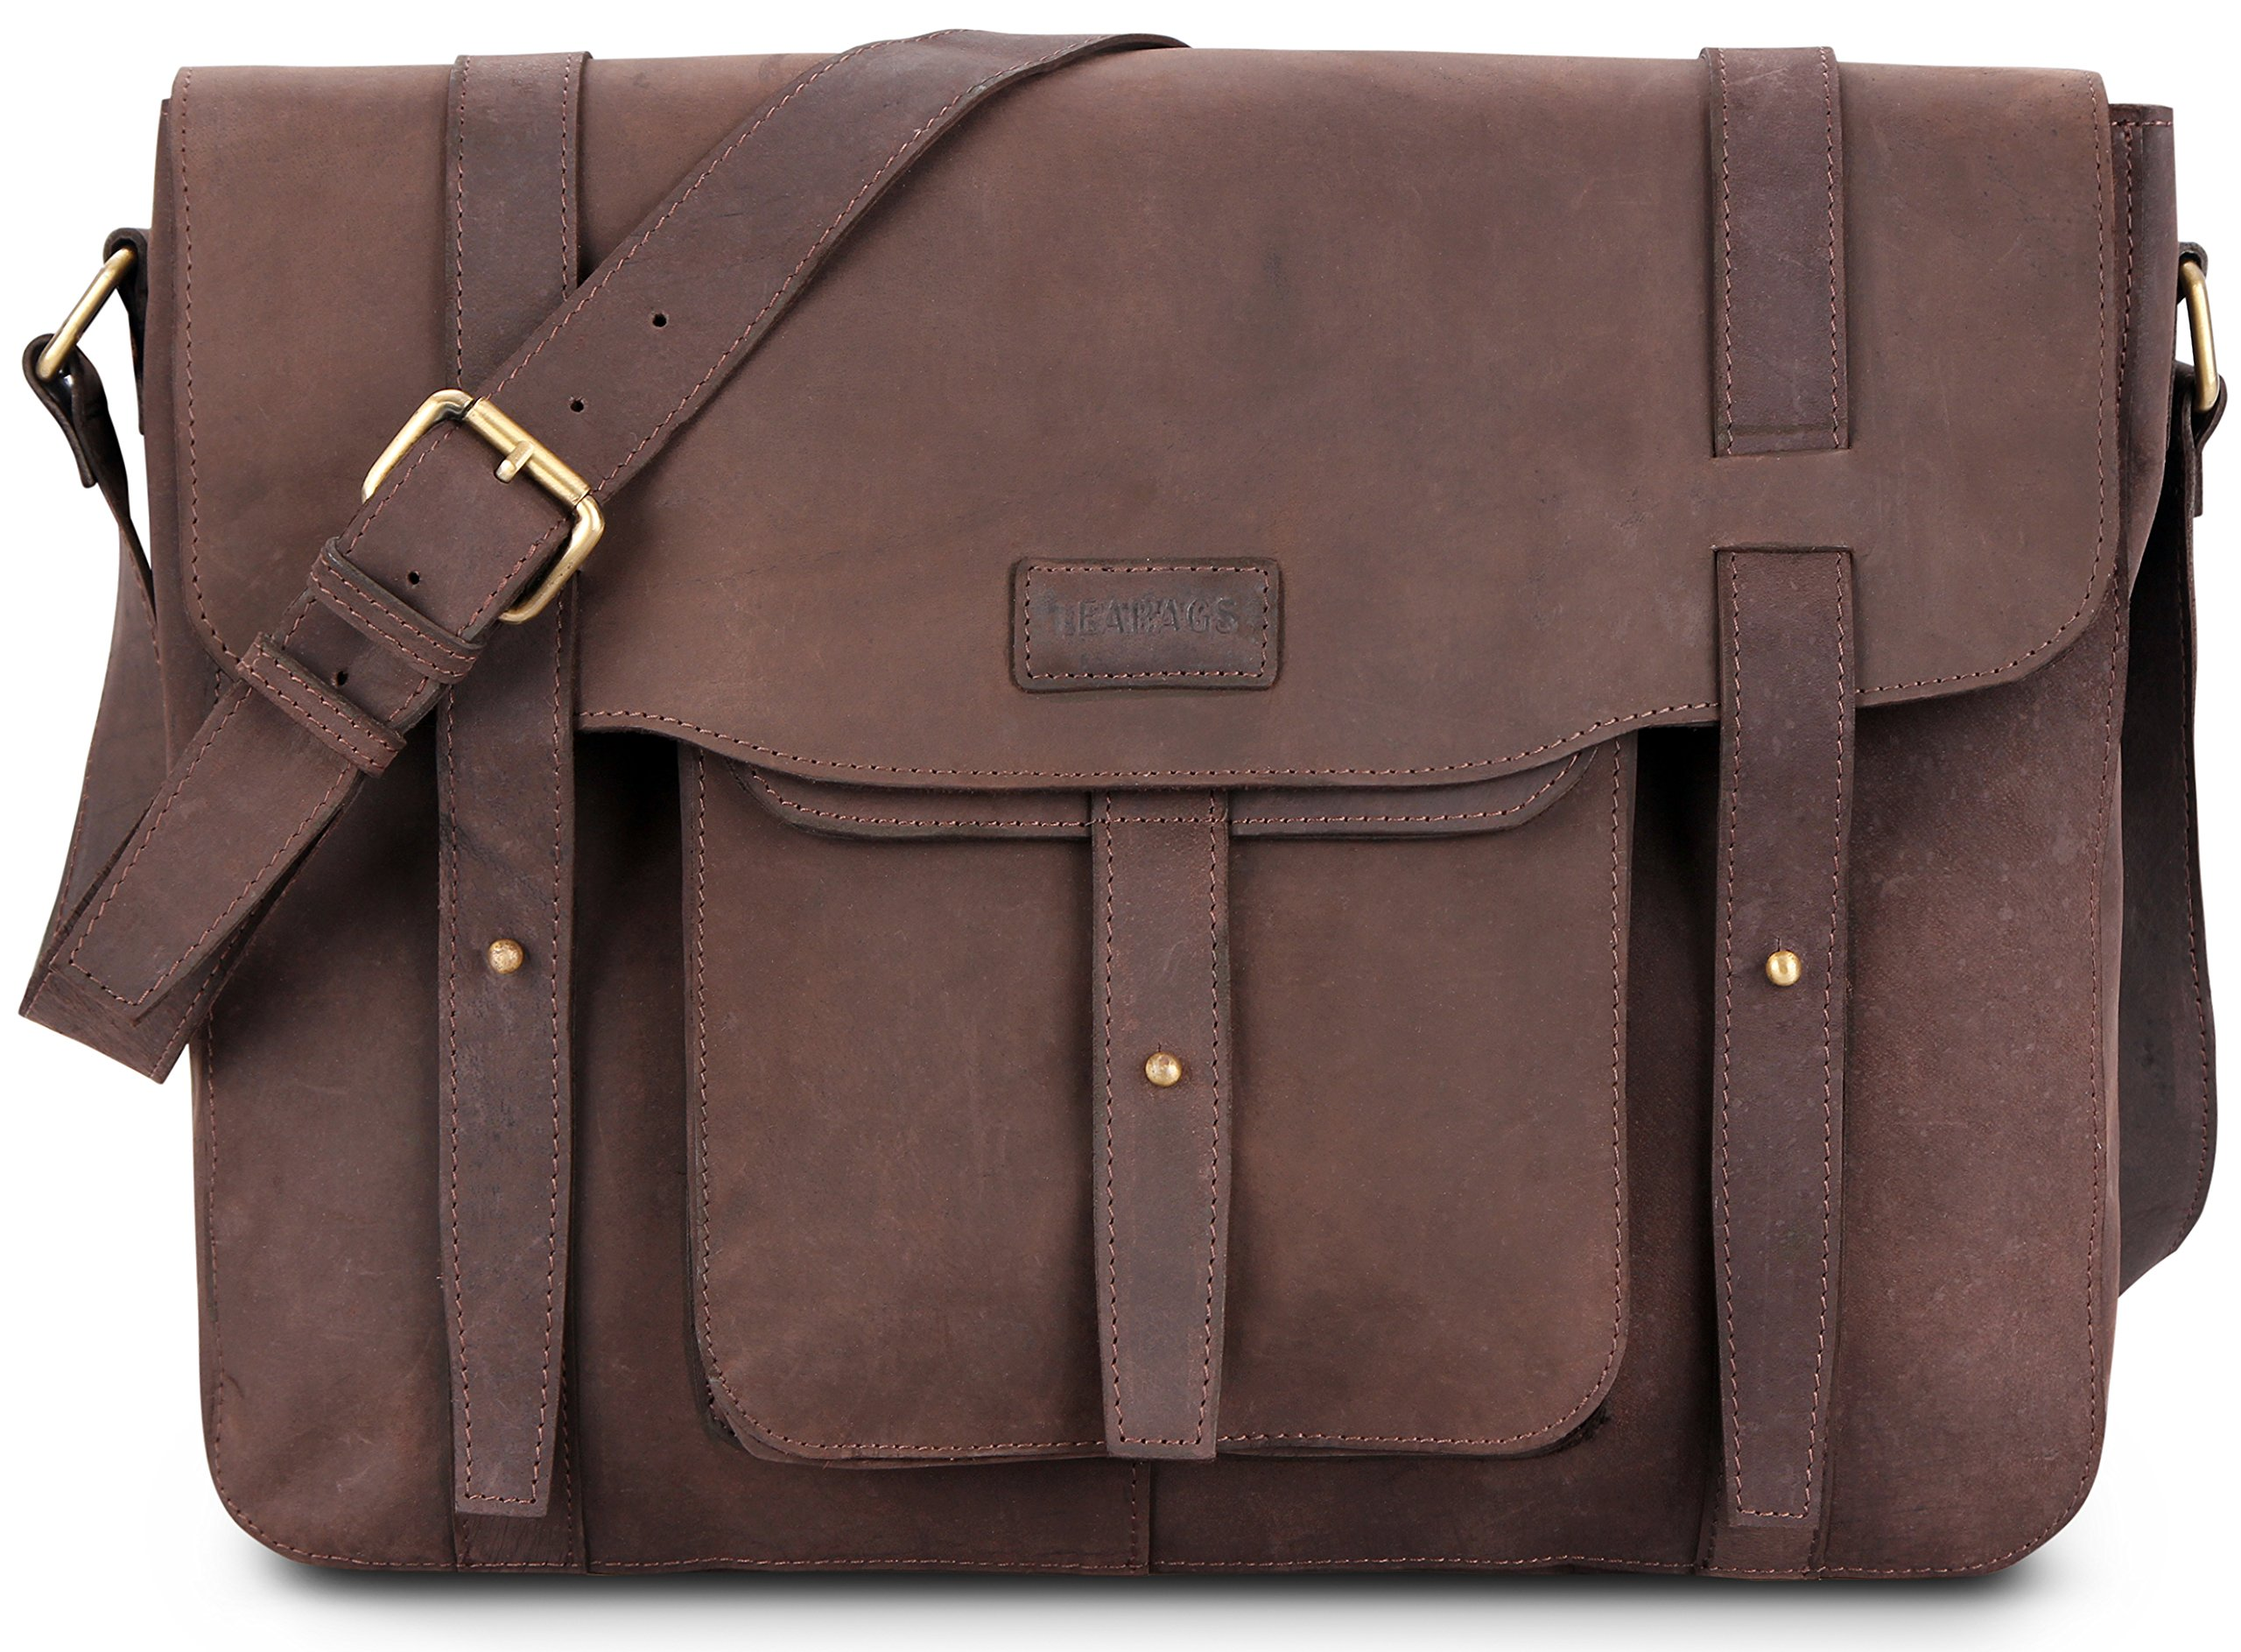 LEABAGS Potwin genuine buffalo leather messenger bag in vintage style - Nutmeg